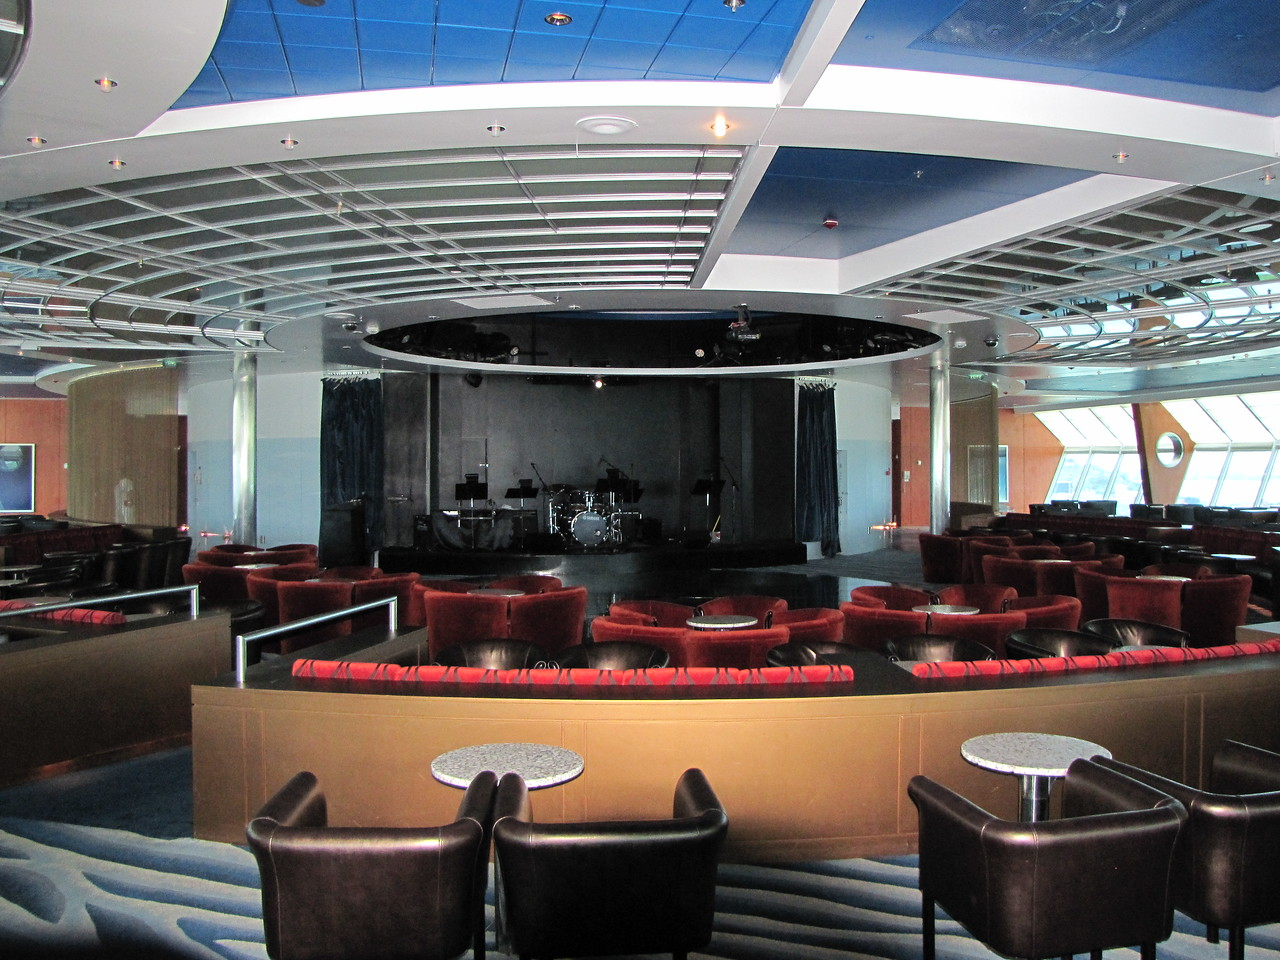 We've got some time to kill so I take some photos of the ship.  This is the Reflections Lounge near the bow of the ship.